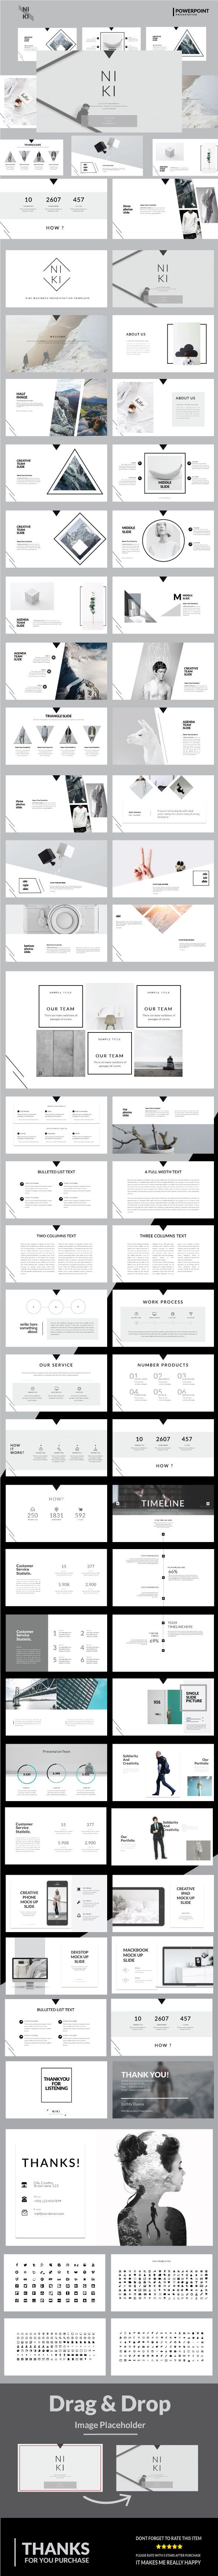 Niki Multipurpose Powerpoint Template - #Business #PowerPoint #Templates Download here: https://graphicriver.net/item/niki-multipurpose-powerpoint-template/19448510?ref=alena994